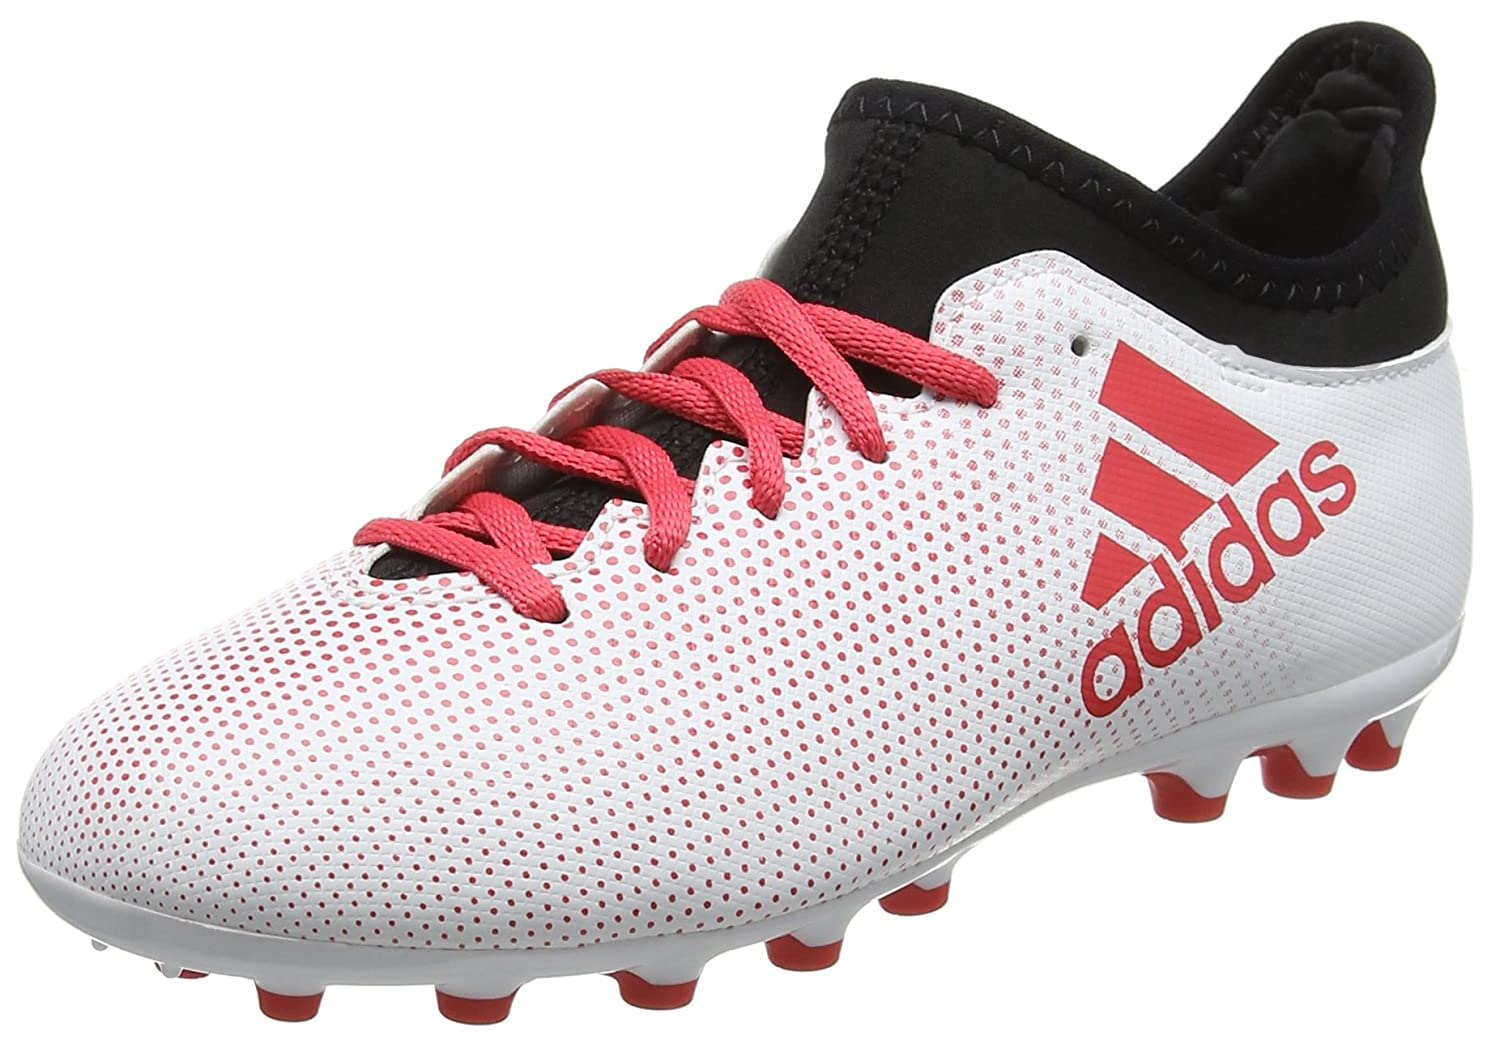 half off 16ec1 6c251 Adidas Kids Youth Football Shoes Boys Boots X 17.3 AG Cleats ...